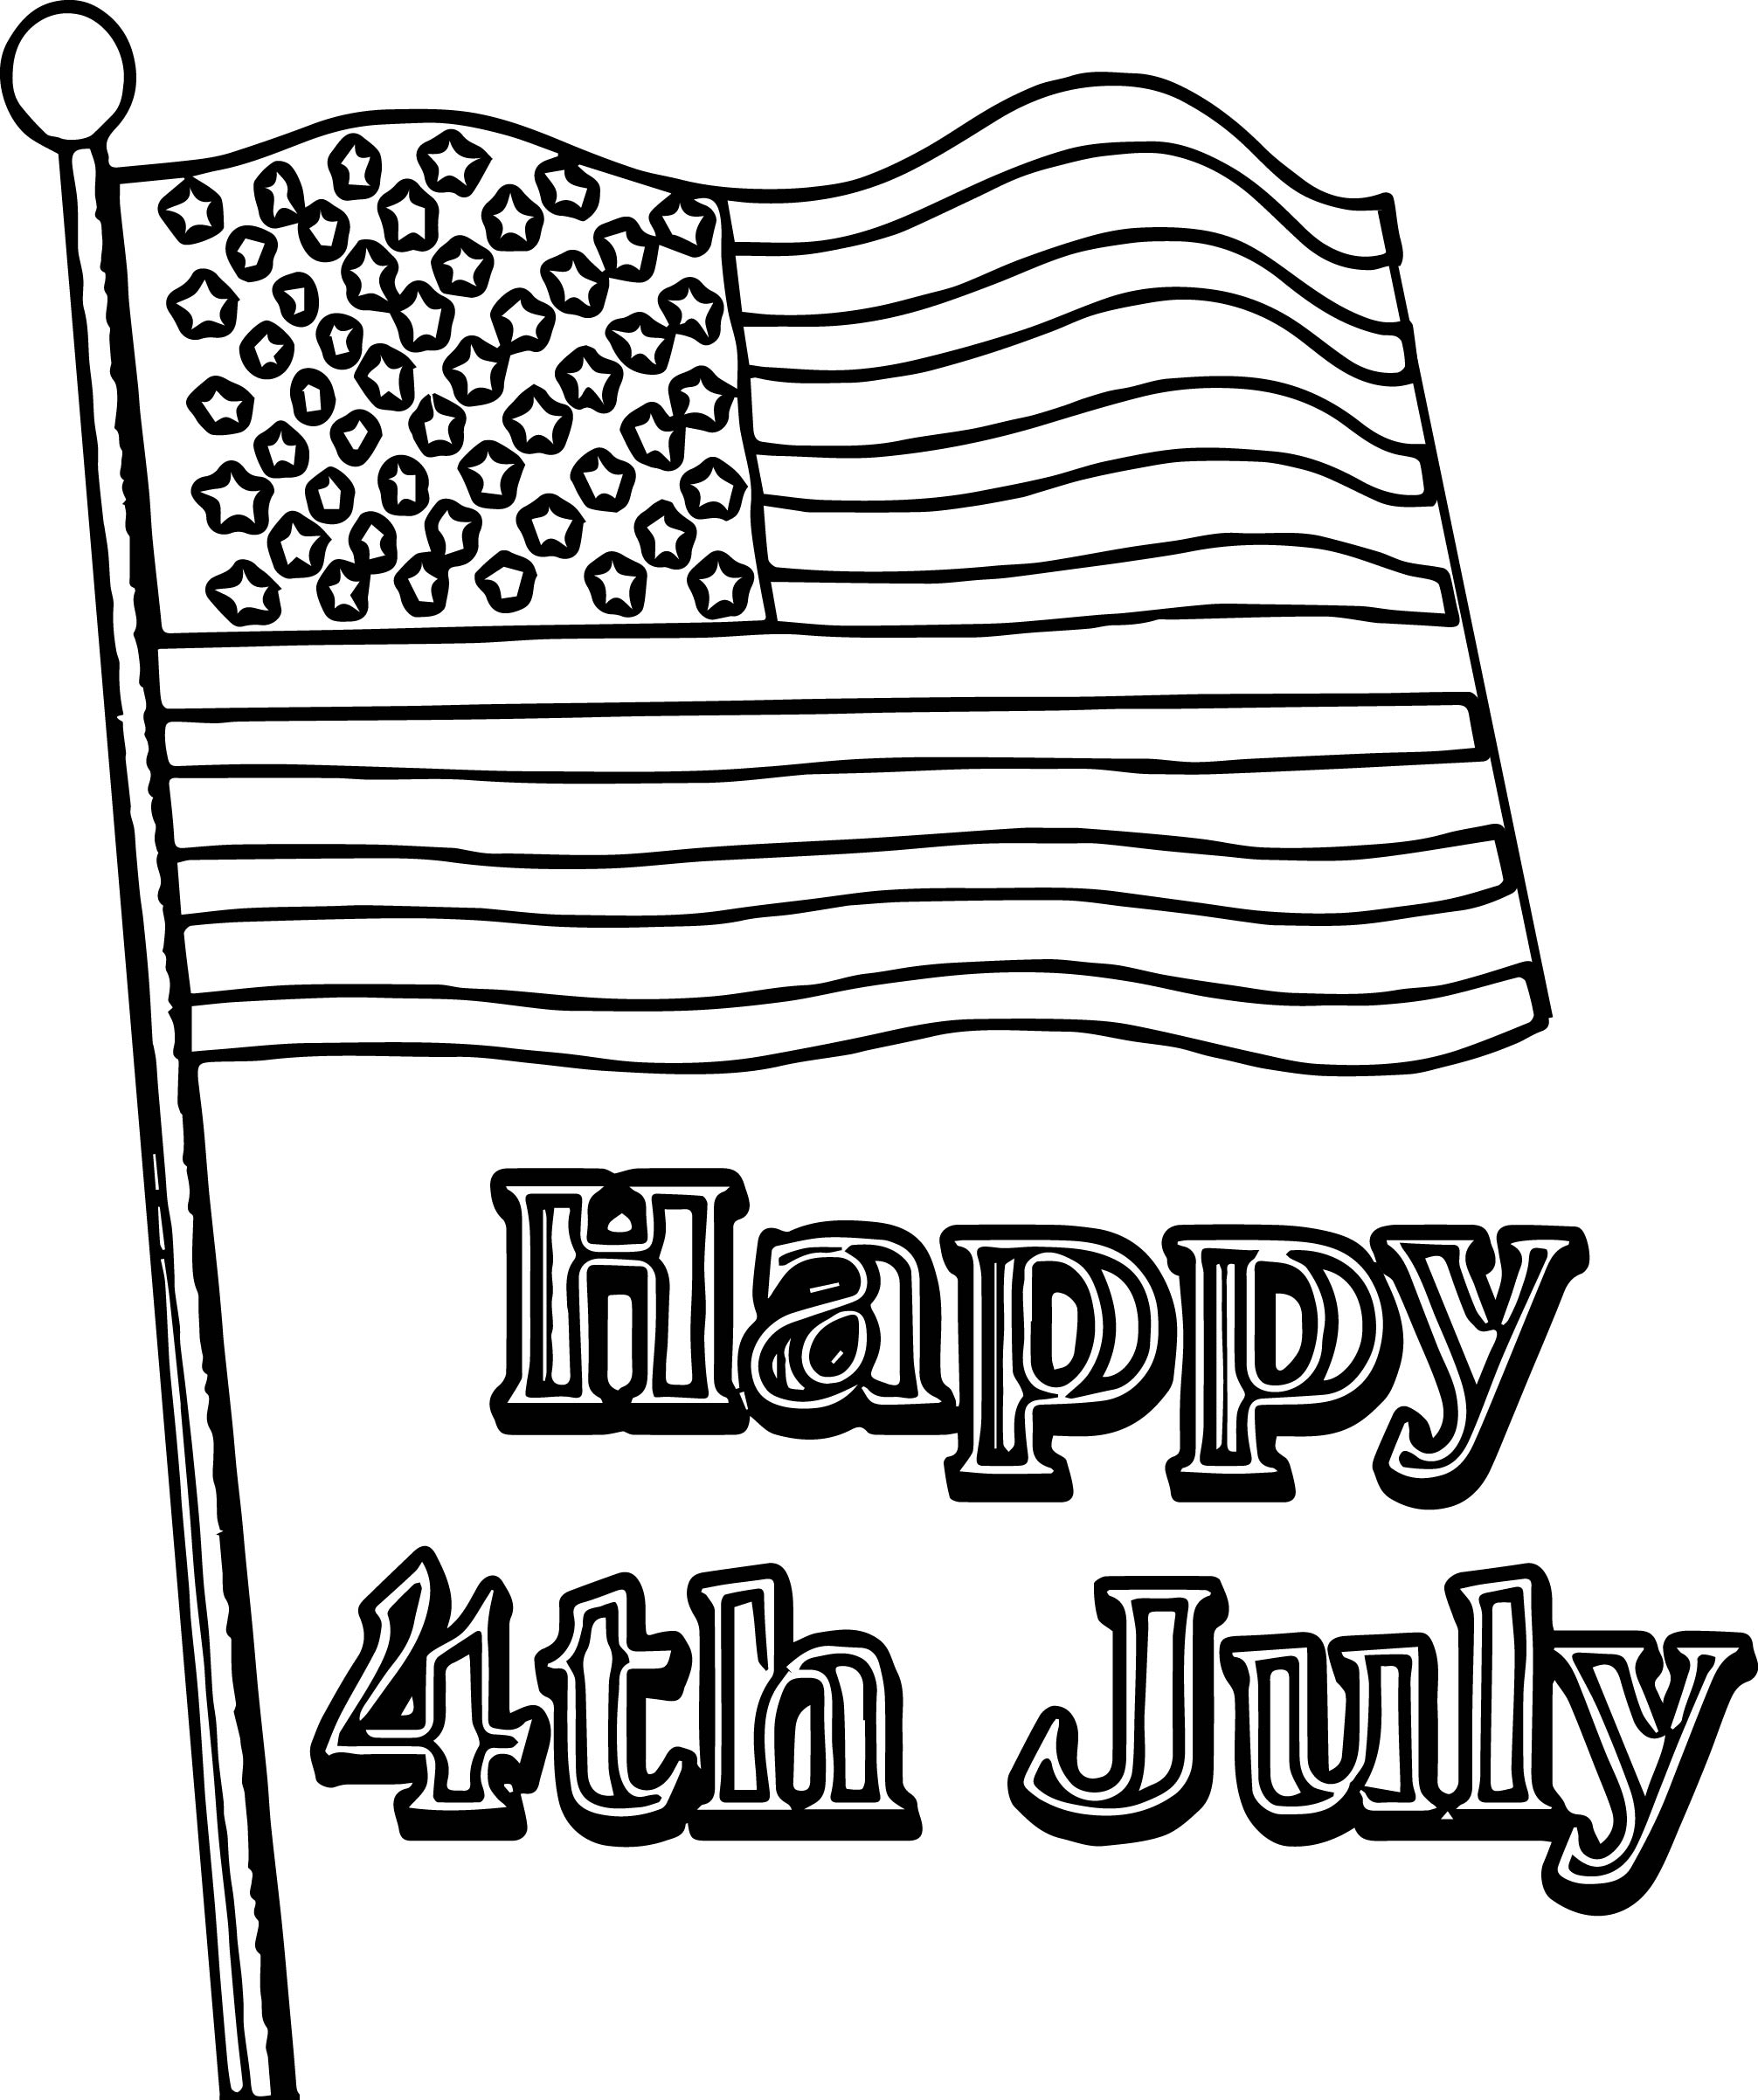 fourth 4th july coloring page wecoloringpage